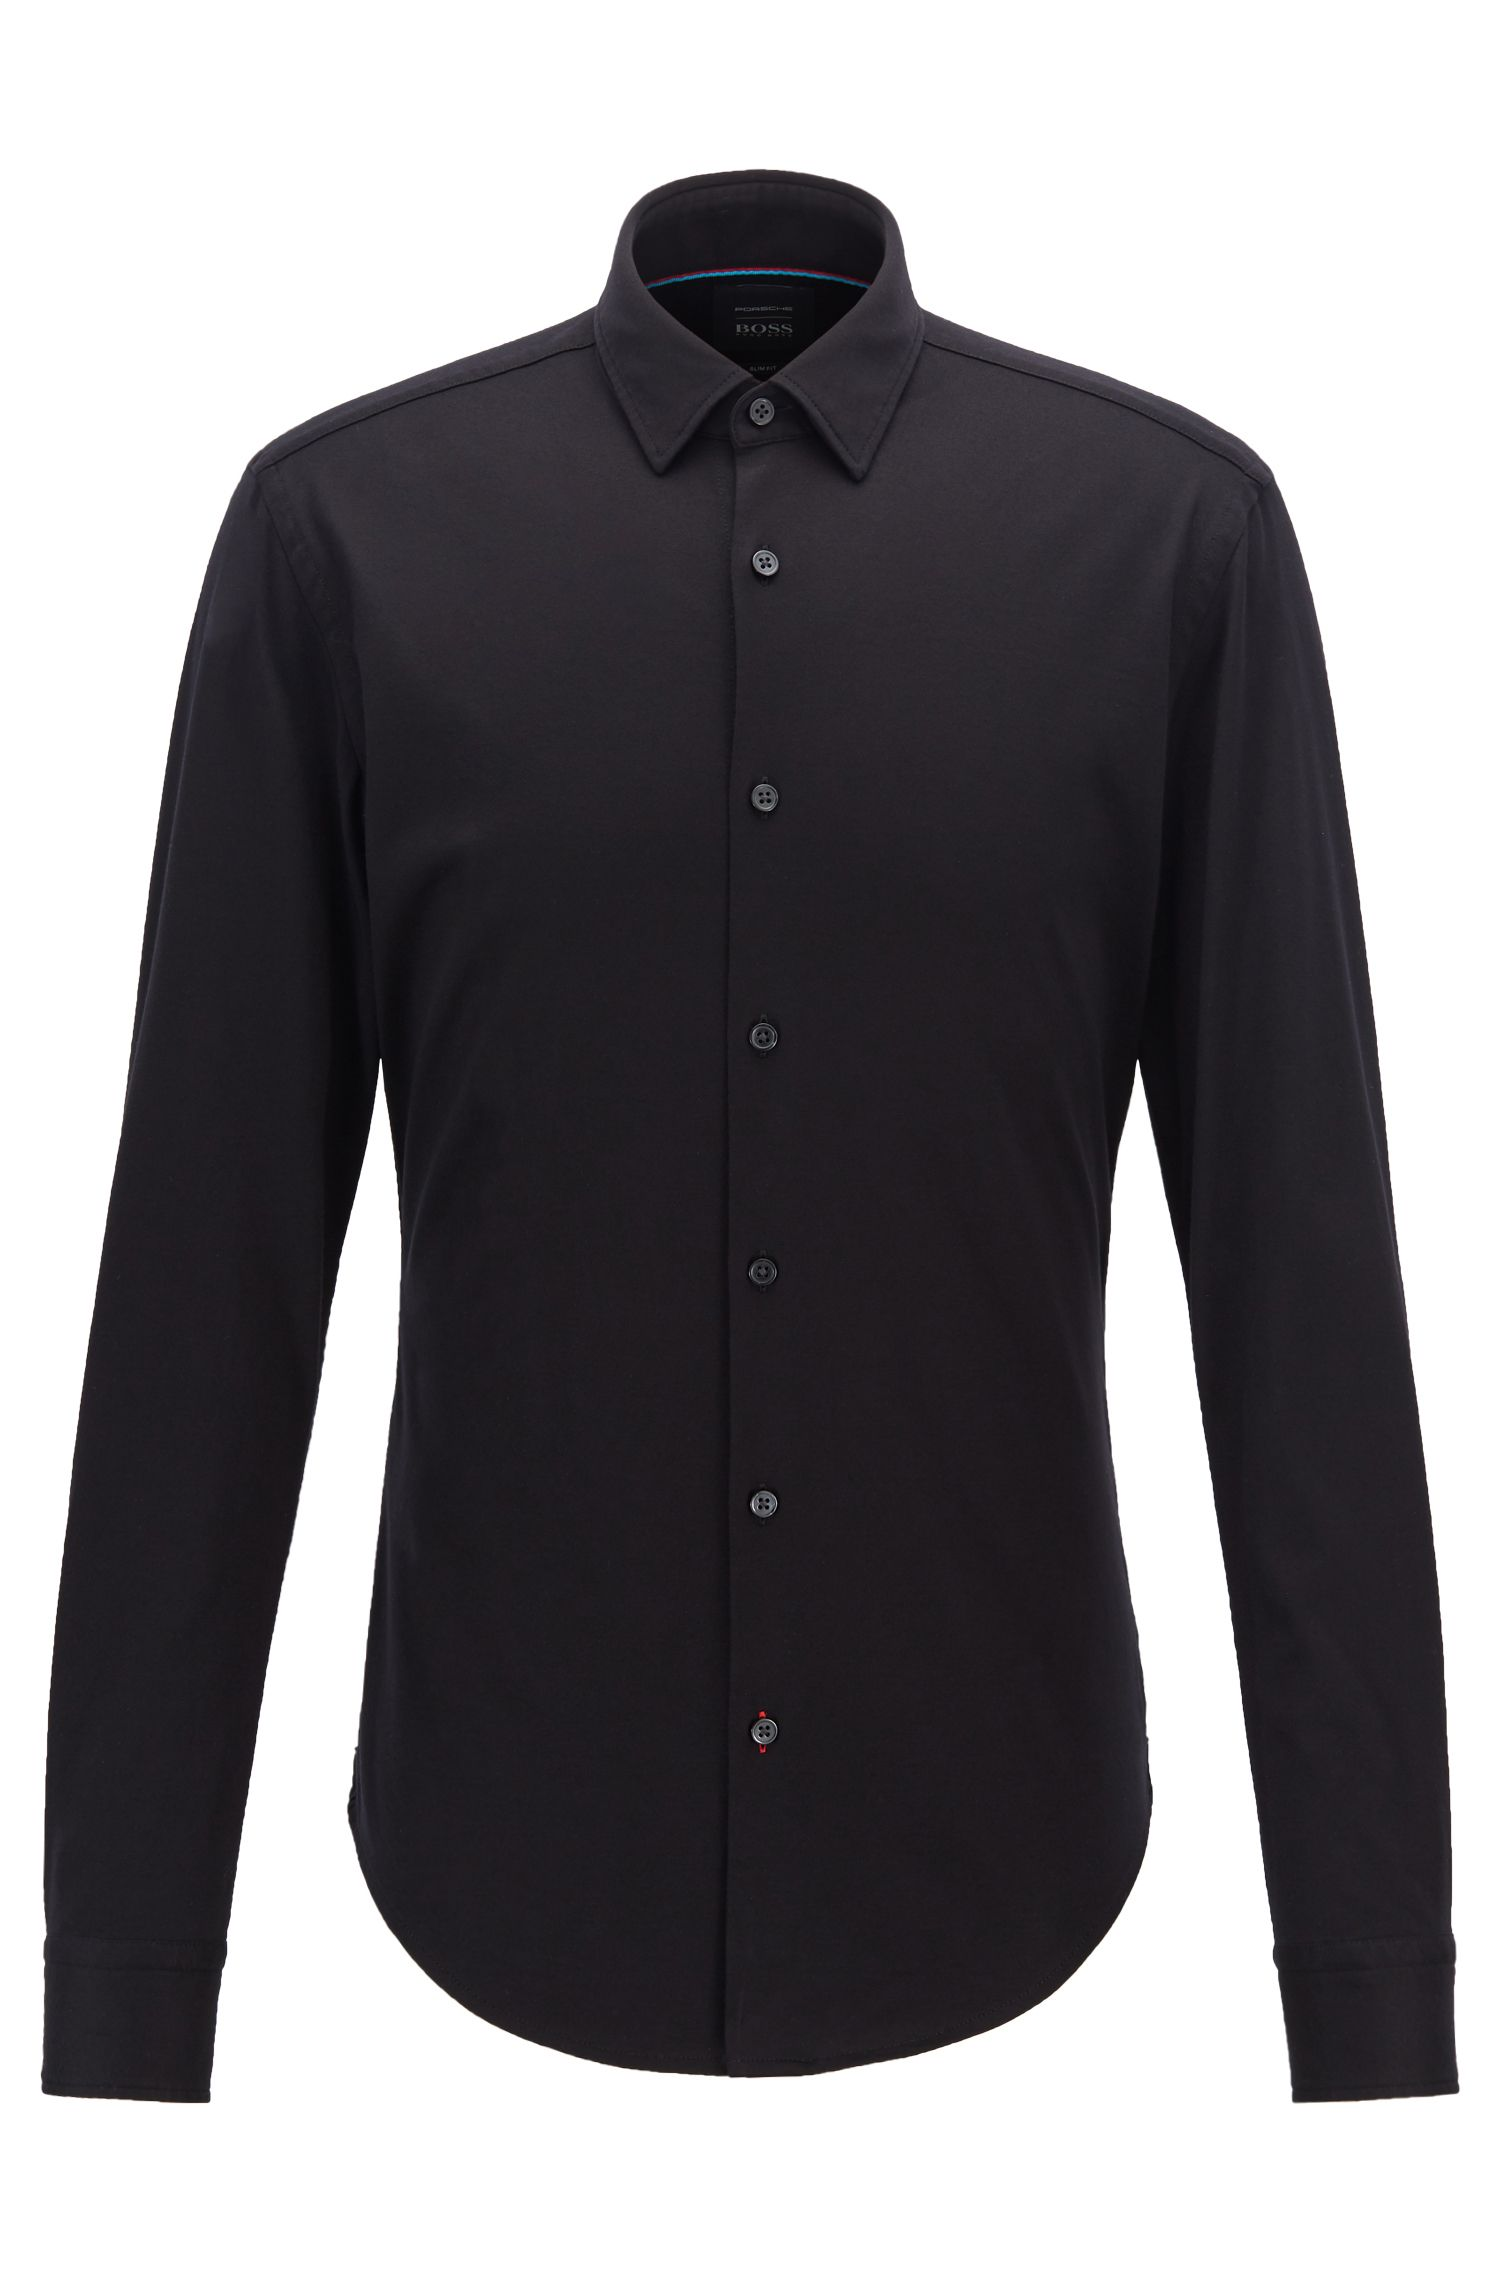 Slim-fit shirt in cotton jersey with contrast details, Black